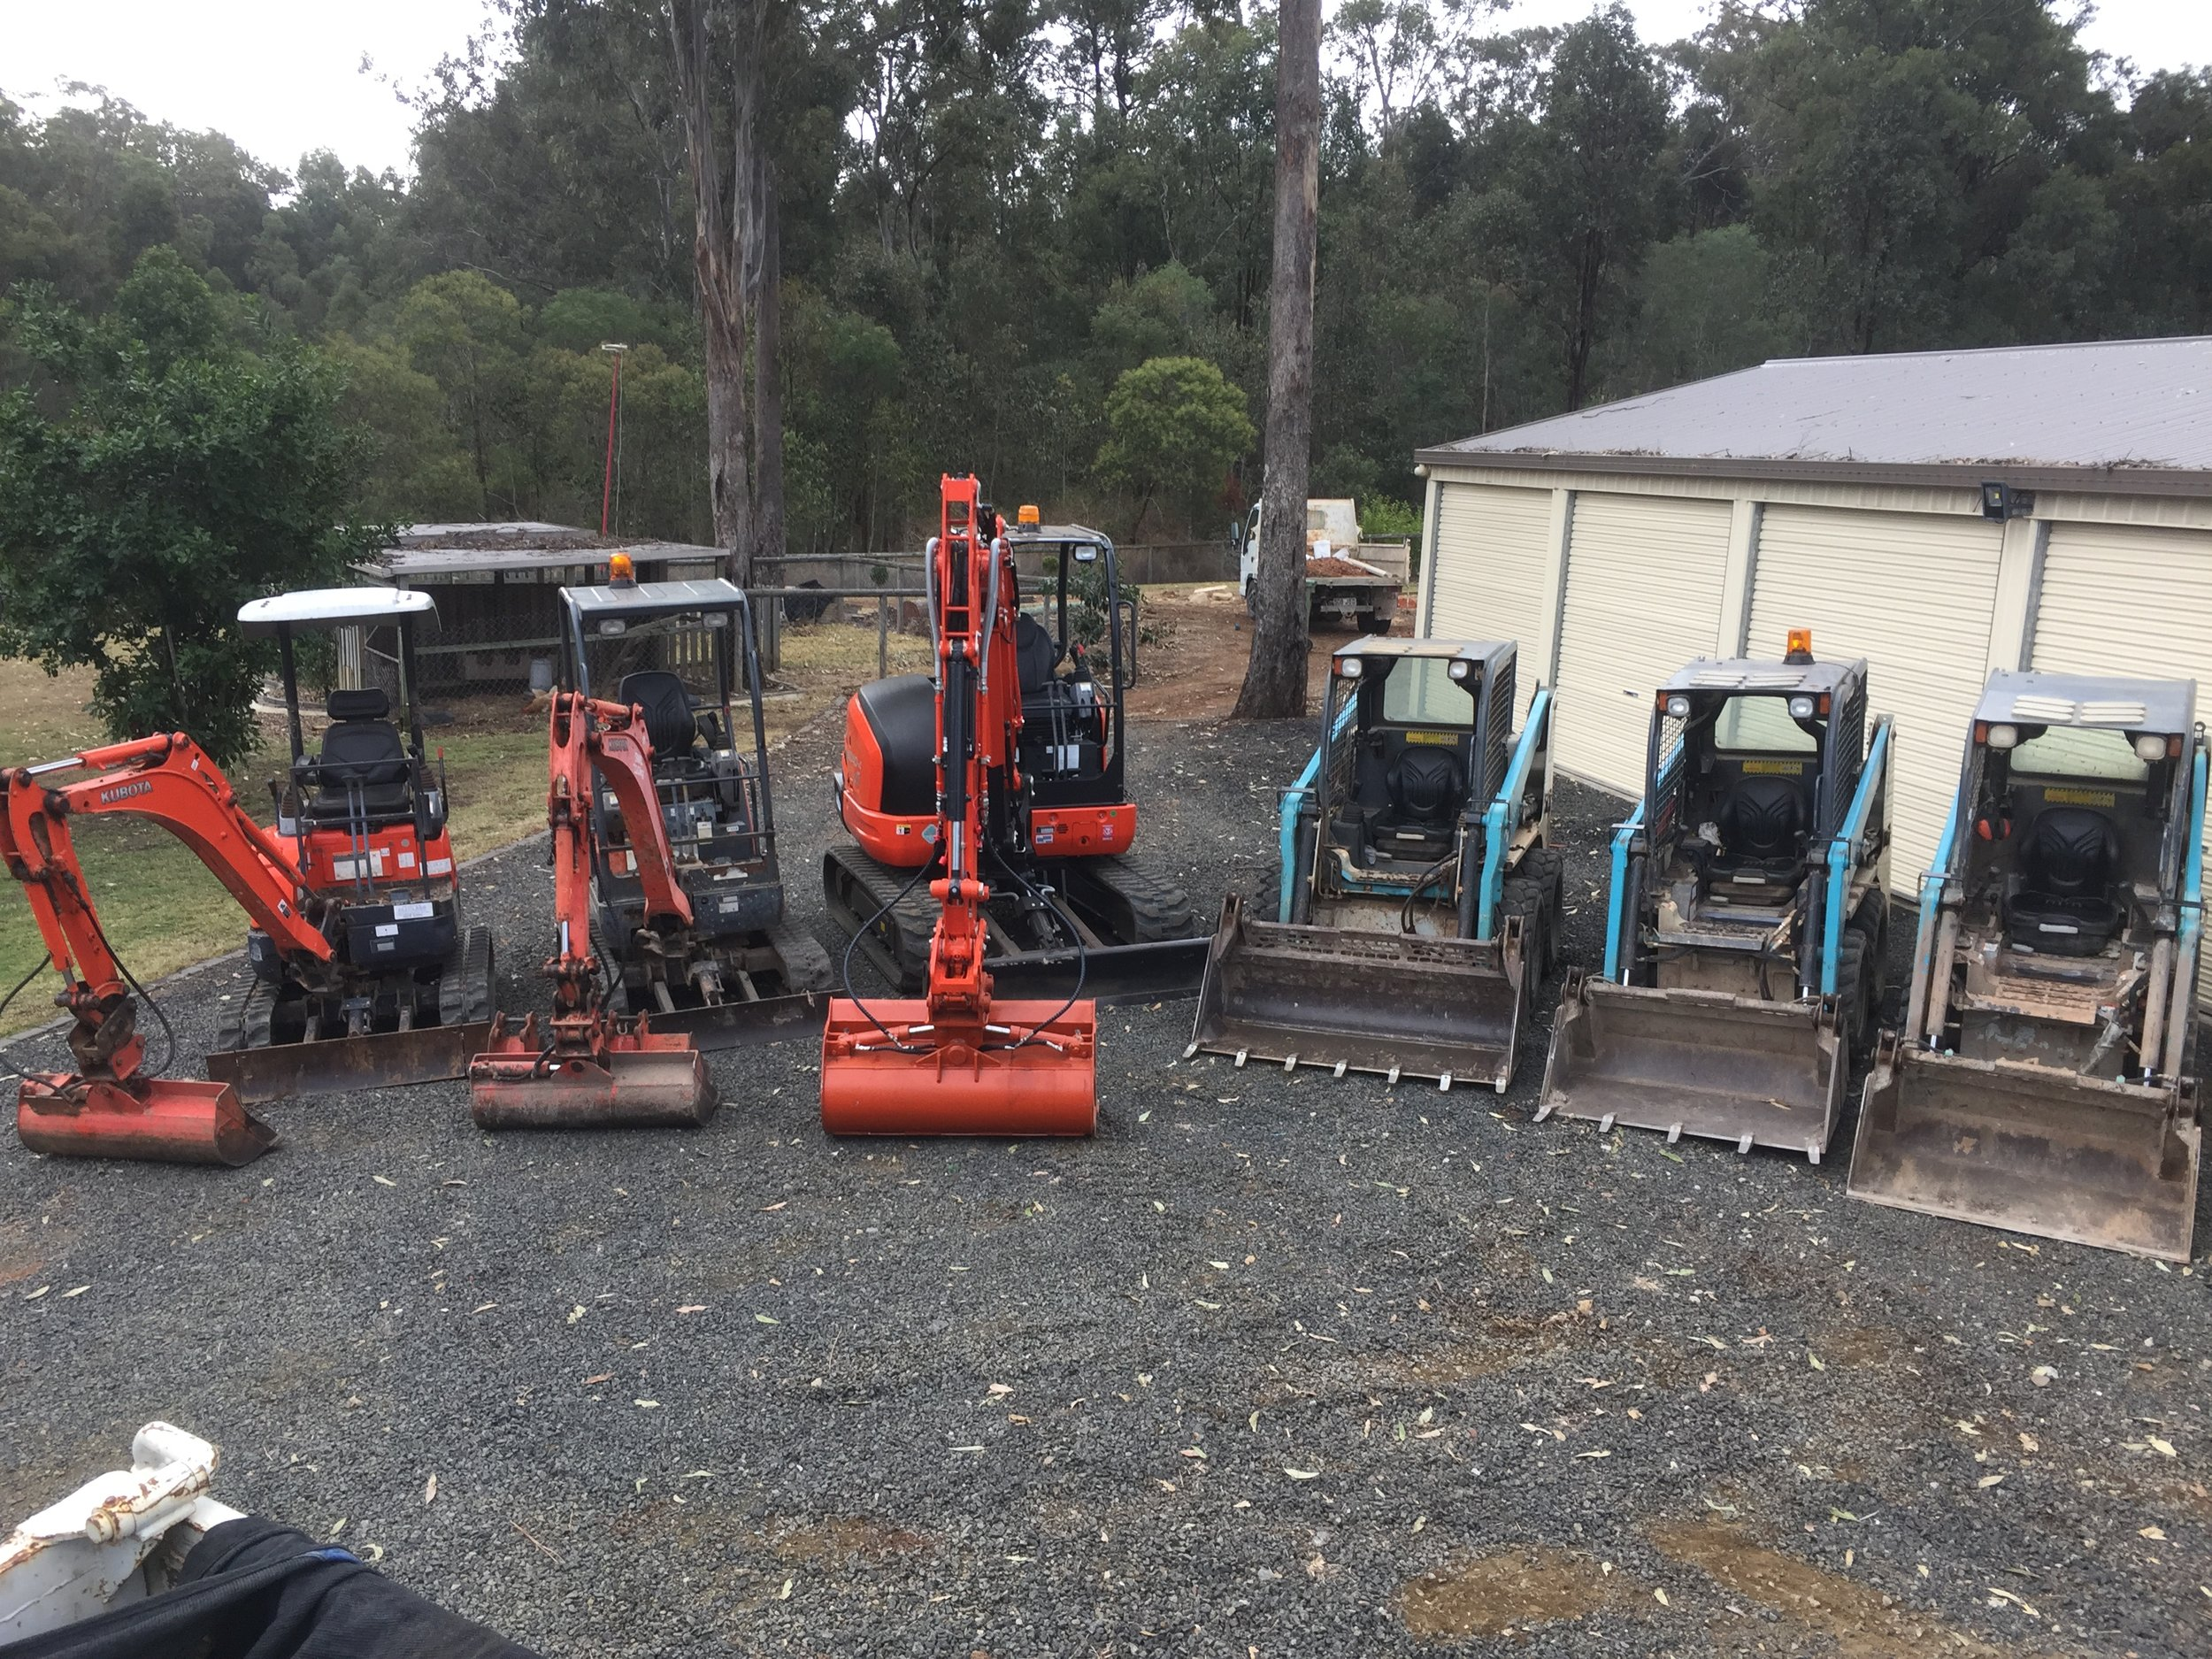 Our Fleet - We pride ourselves on our impressive, well maintained fleet. Fassifern owns and operates all of our own machines, which makes landscaping and earthmoving easy.